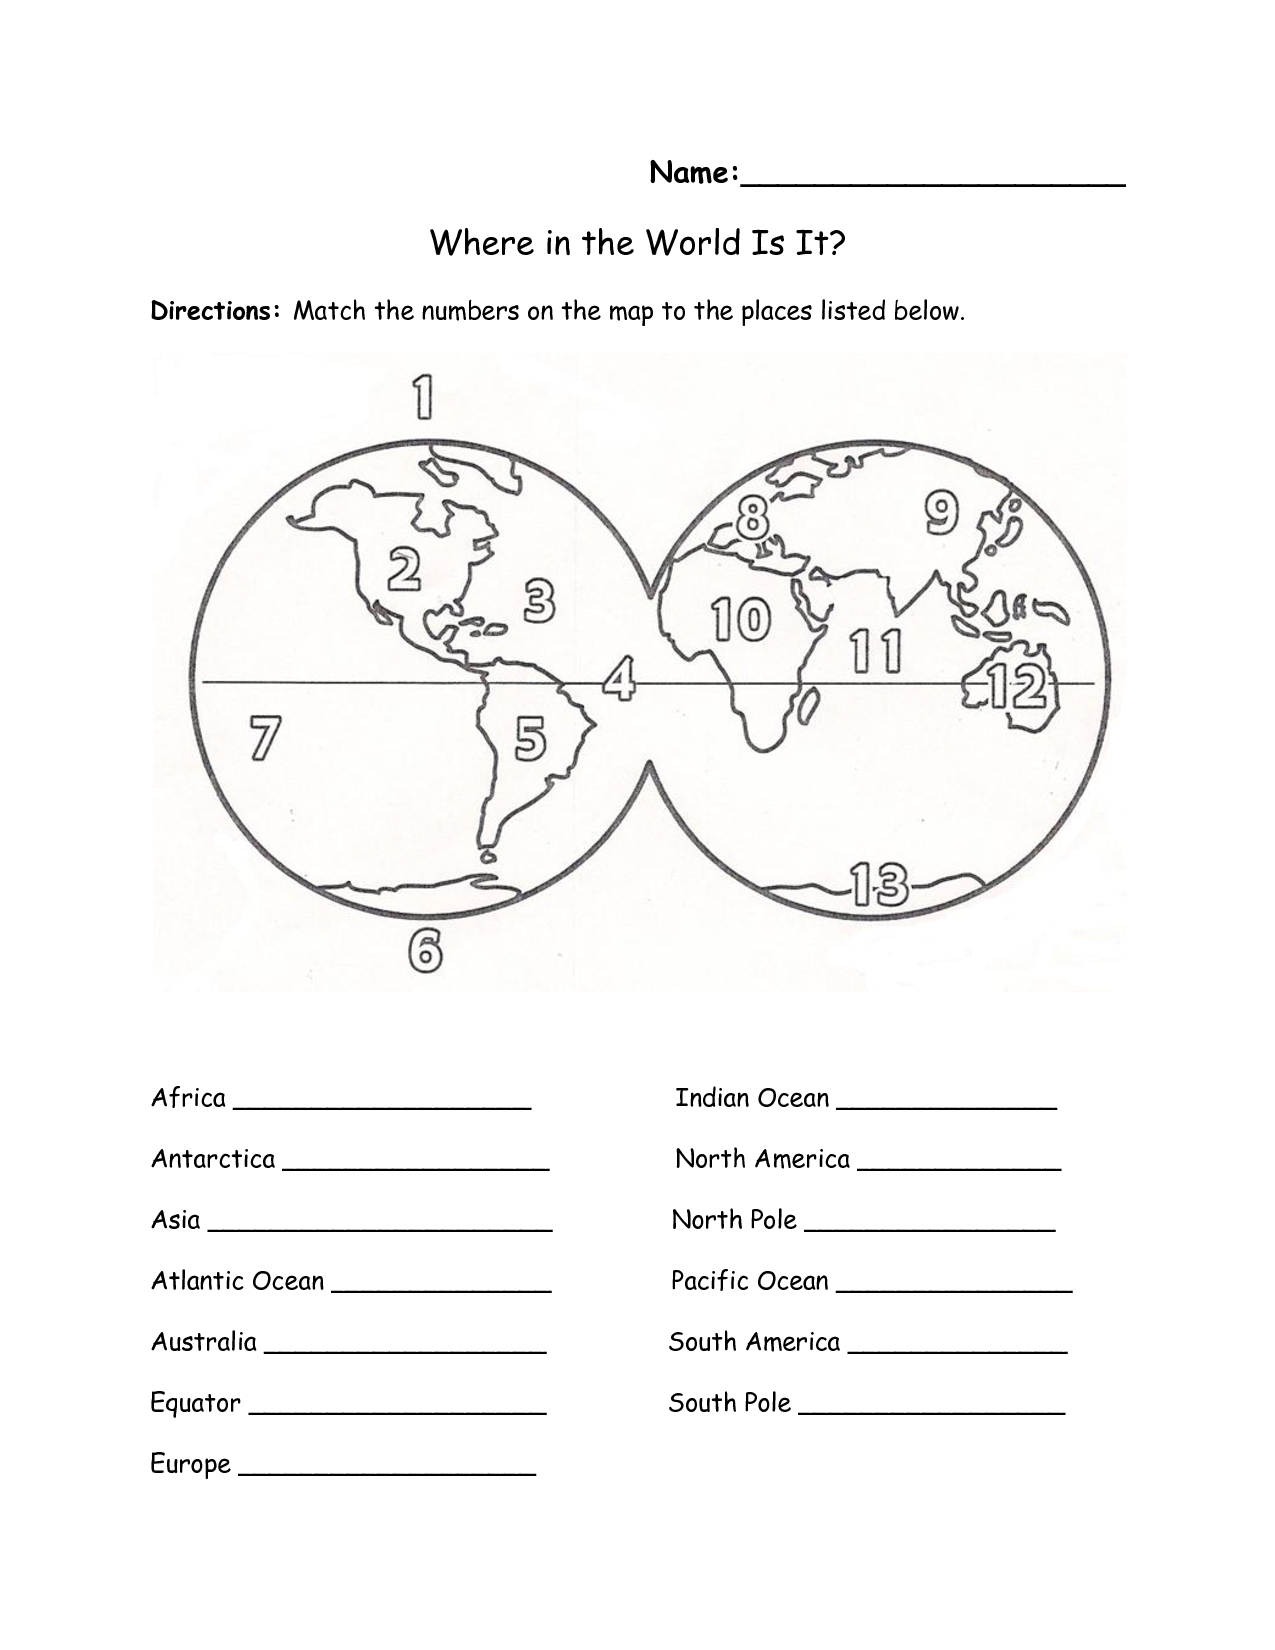 Label Continents Oceans Worksheet: Continents And Oceans Worksheet | Continents Worksheet Printable